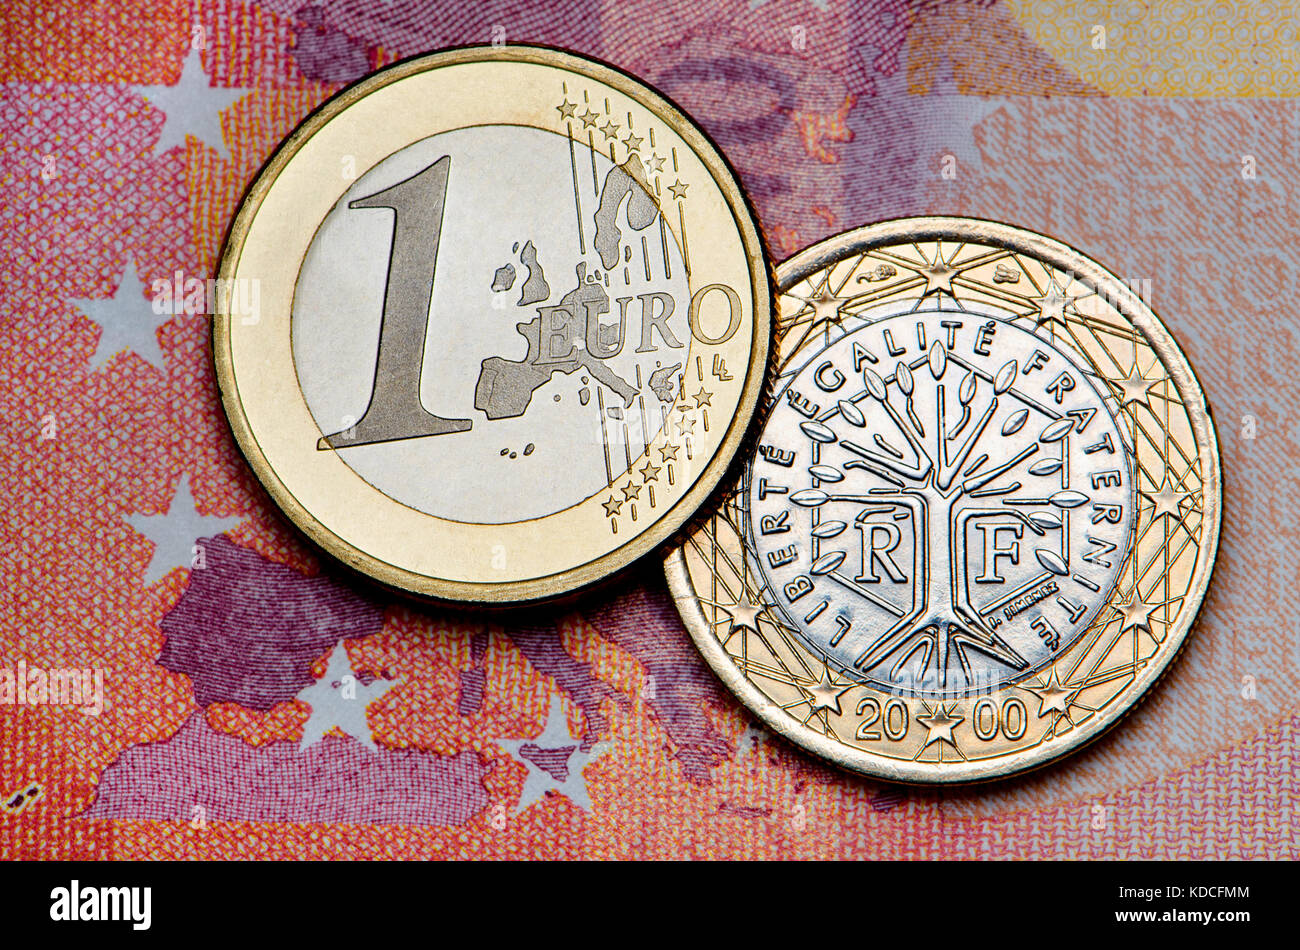 Euro Coin France Photos Euro Coin France Images Alamy